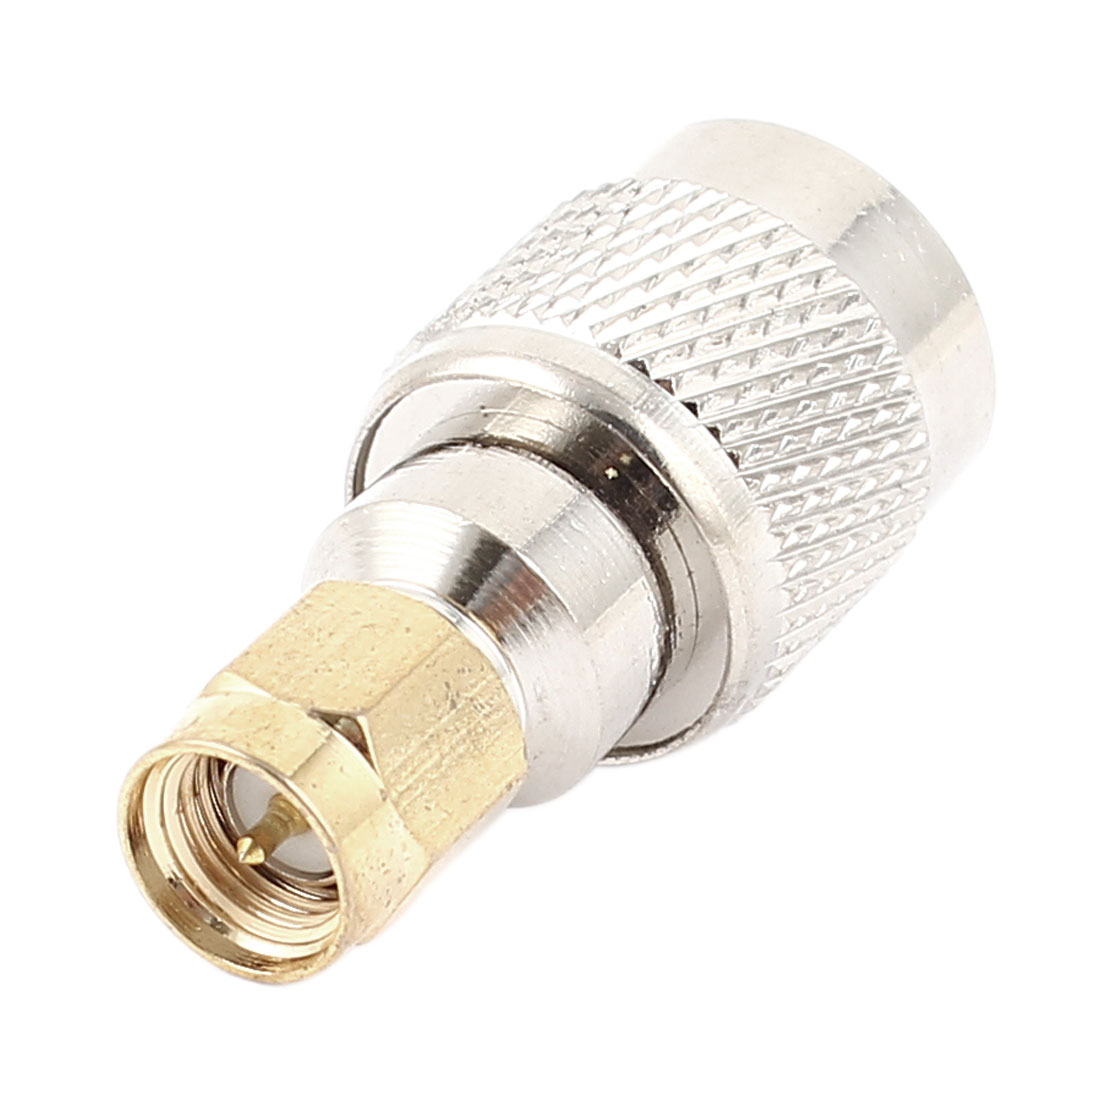 TNC M TO SMA M ADAPTER COAXIAL